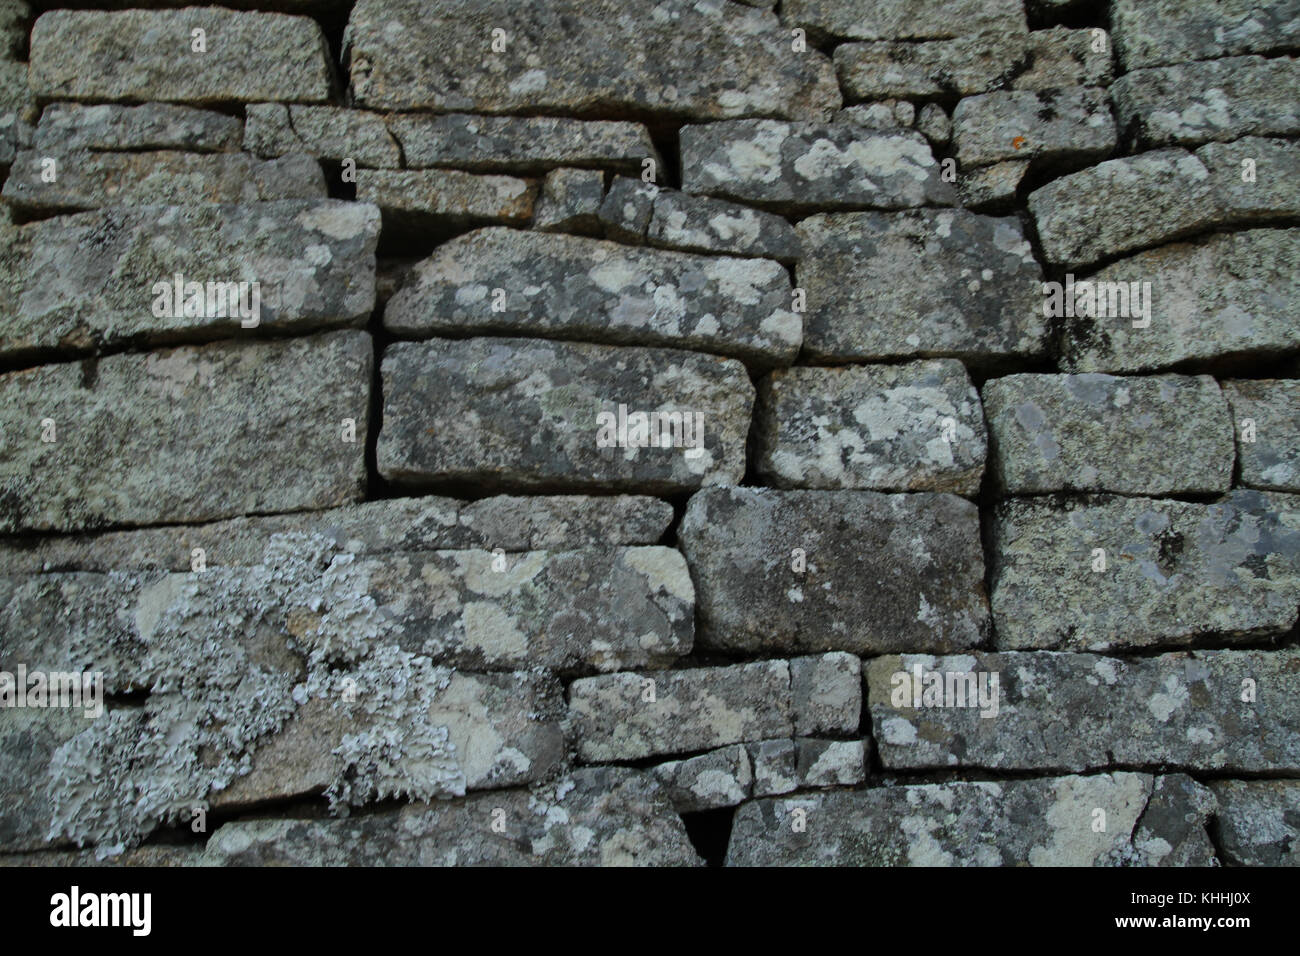 Great Zimbabwe - 16 October 2011: Details of the graphite rock wall that is the Great Zimbabwe. . Credit: David - Stock Image